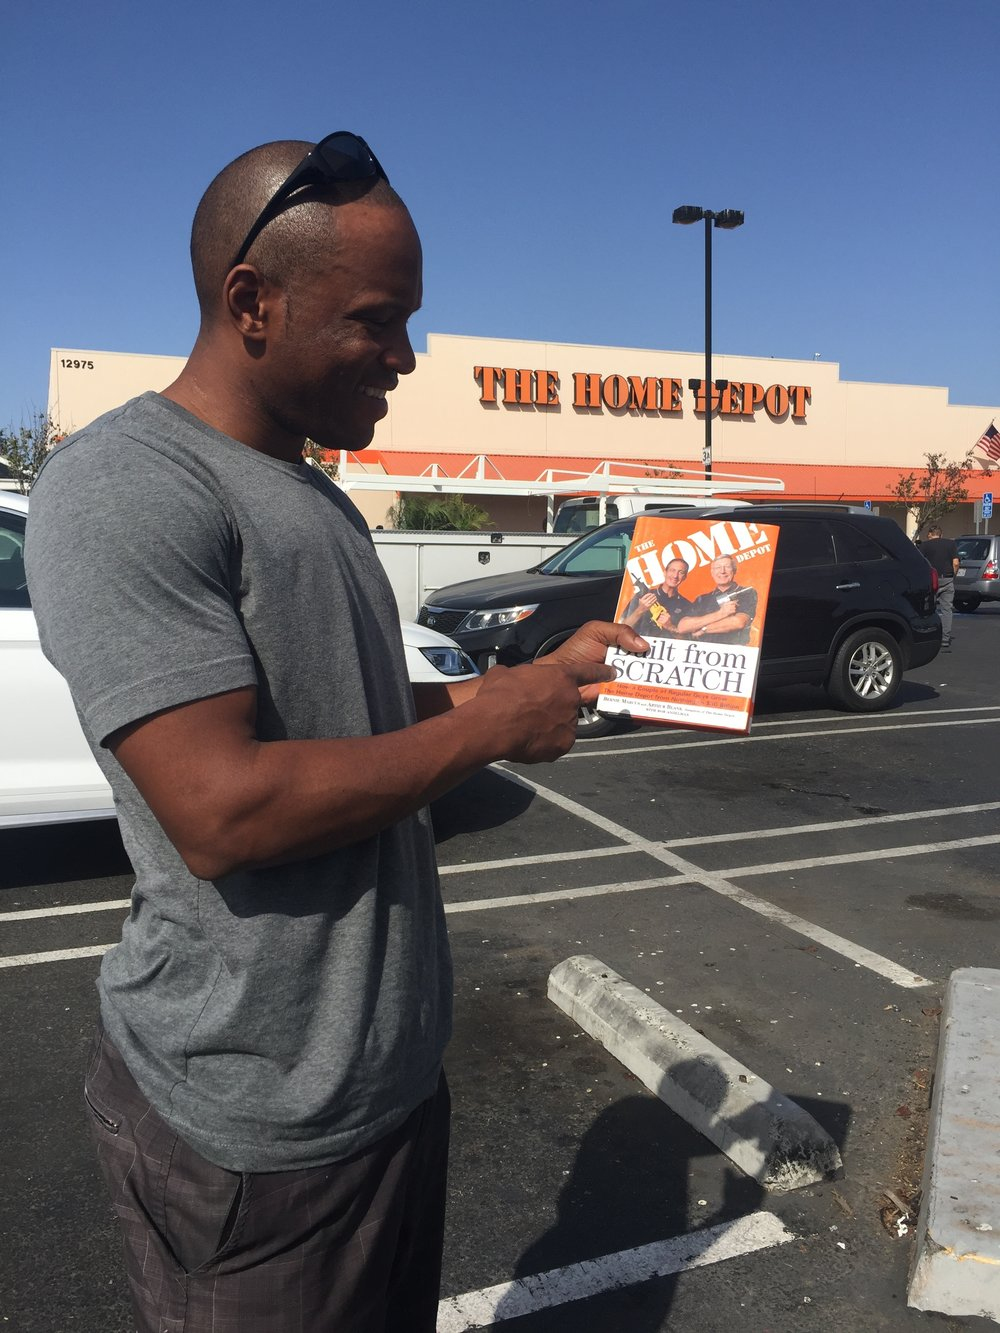 Dane Flanigan the Home Depot.jpg